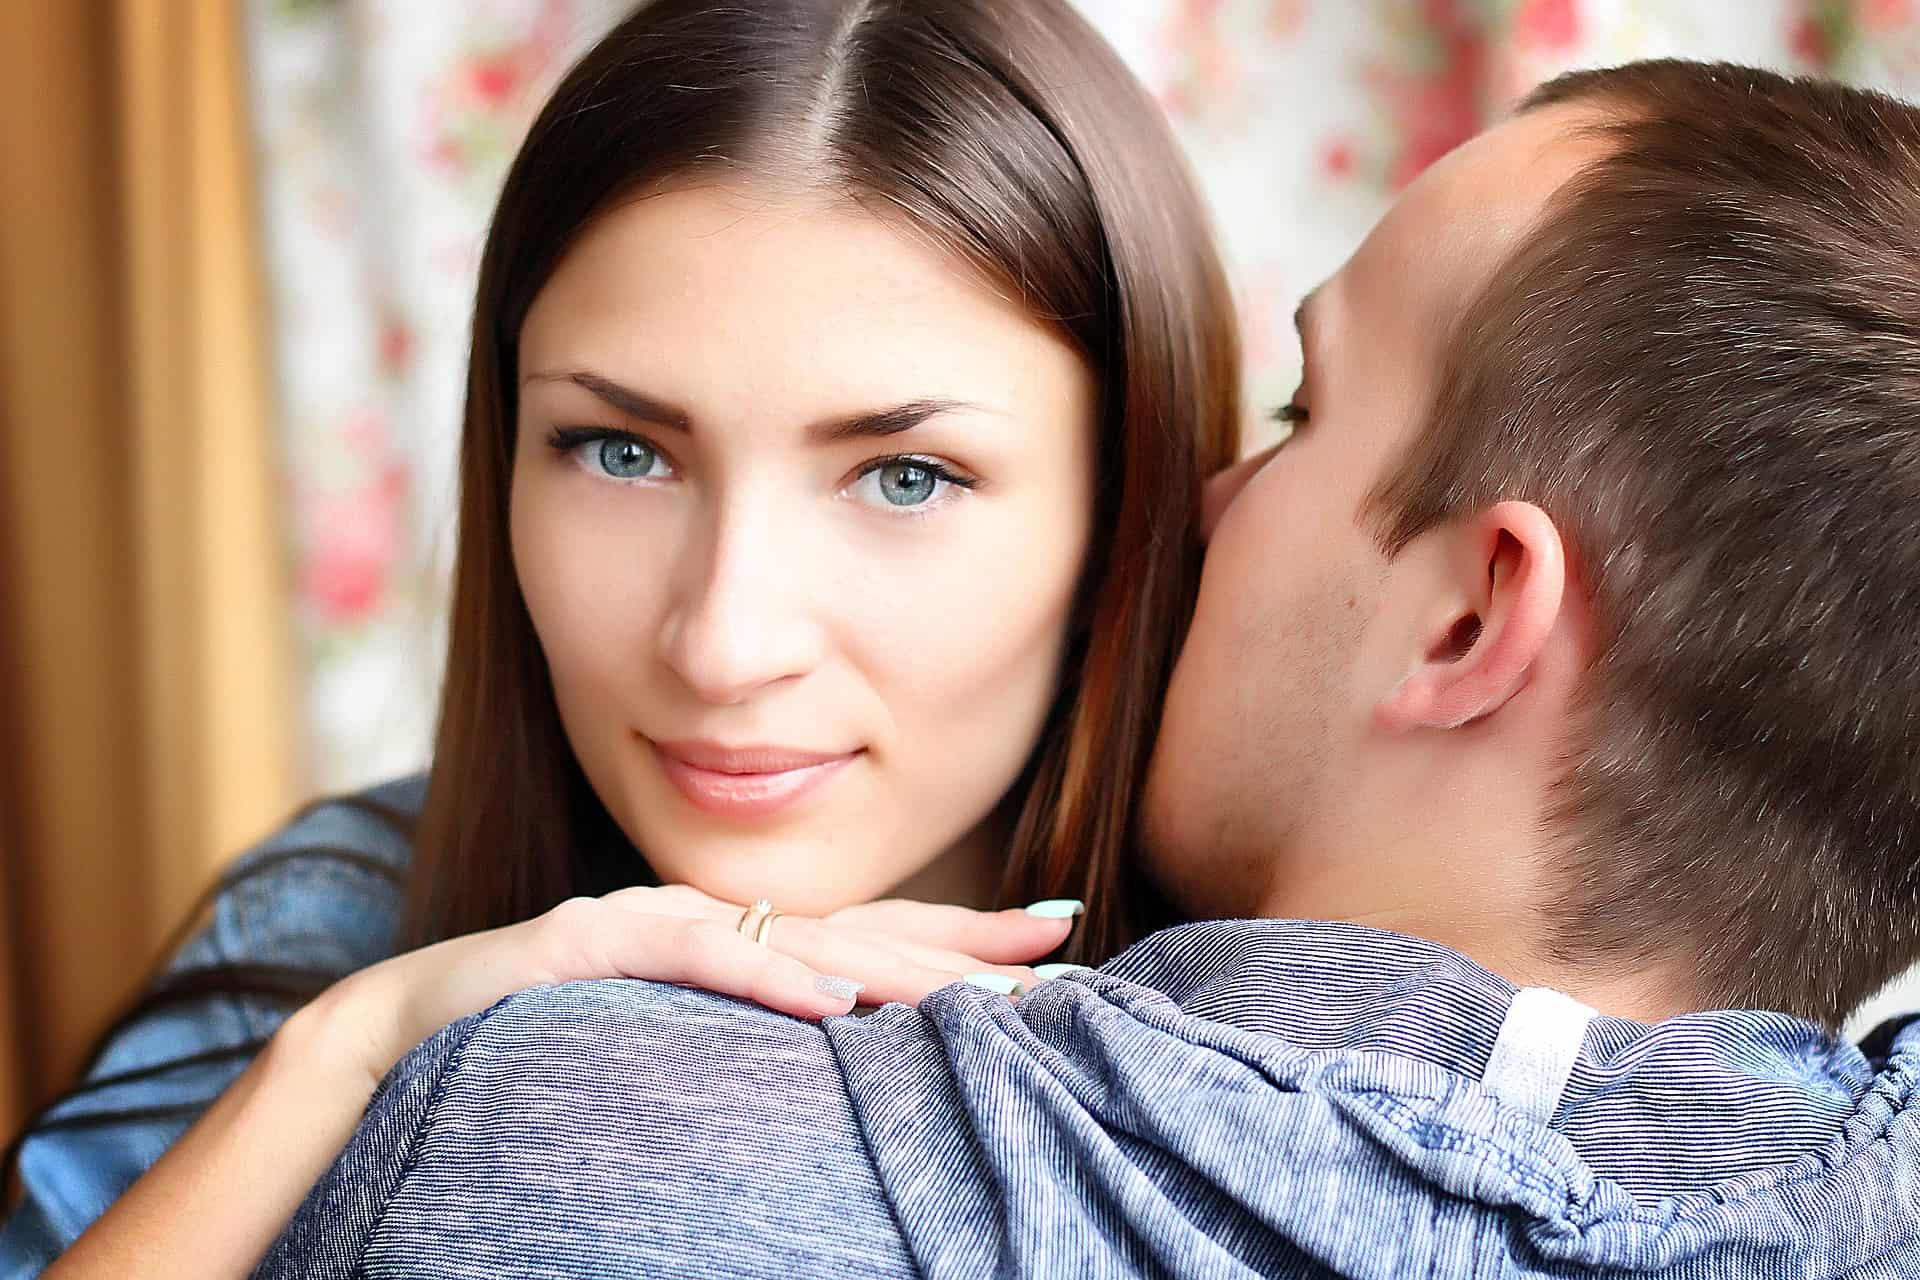 First Love: Things That You Learn From The Relationship